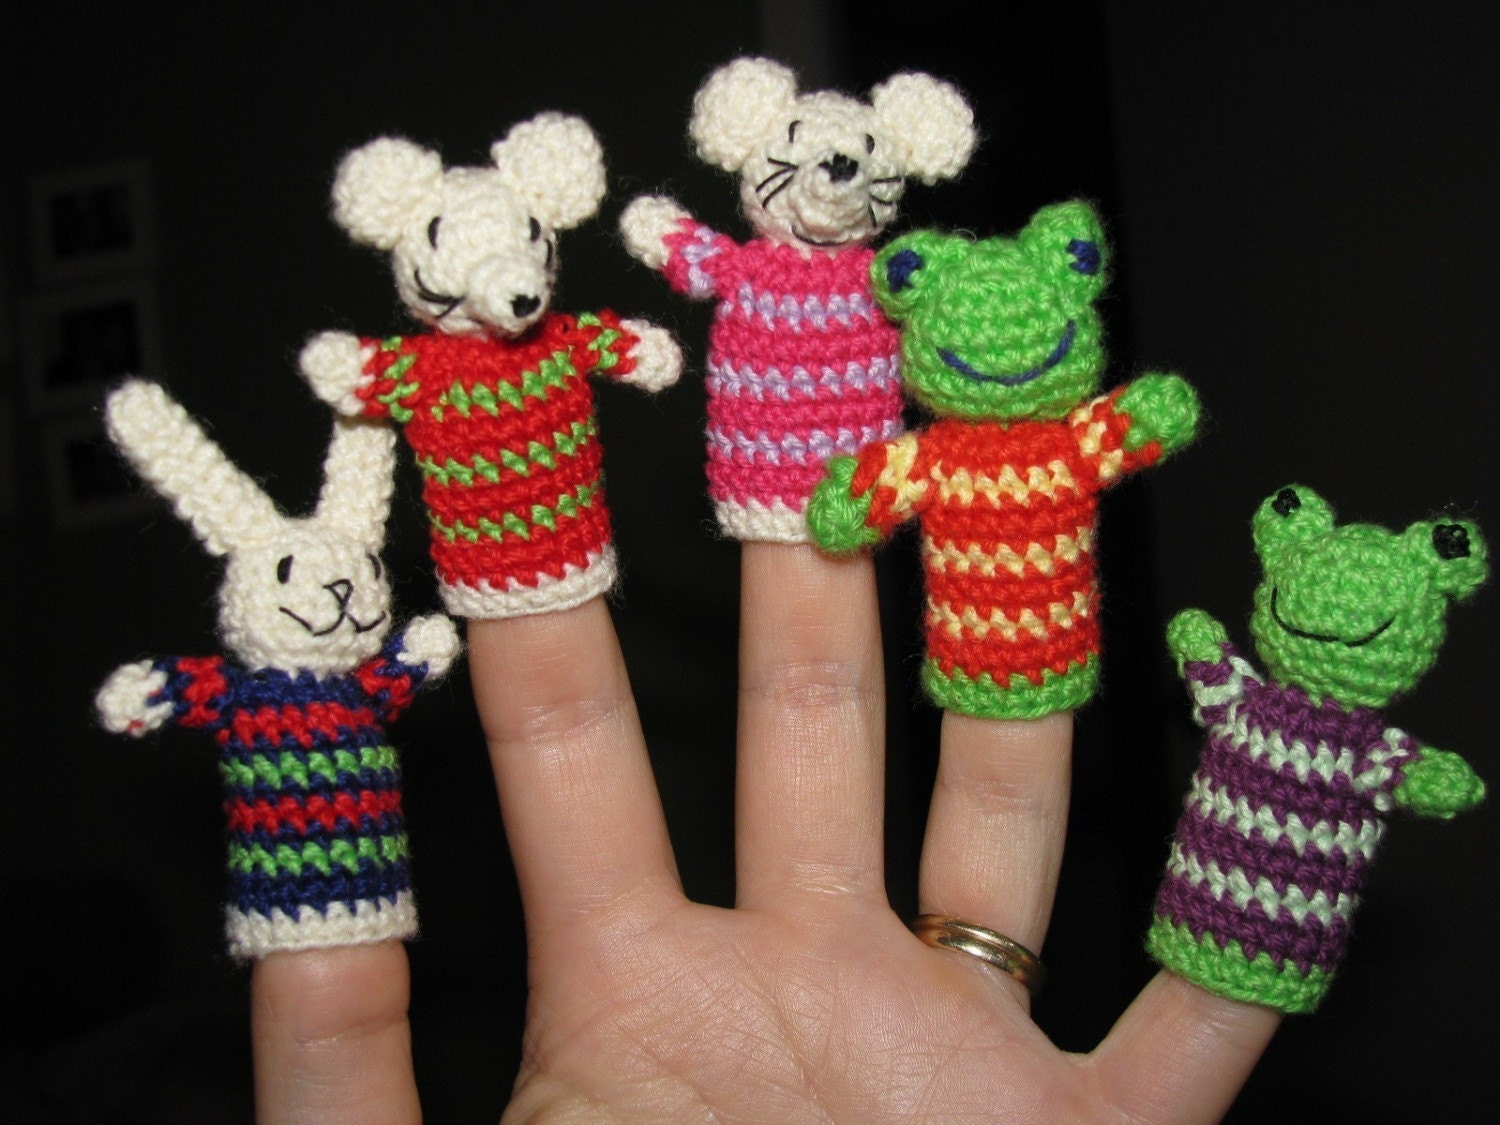 Knitting Patterns For Finger Puppets Free : FREE CROCHET FINGER PUPPET PATTERNS - Crochet and Knitting Patterns